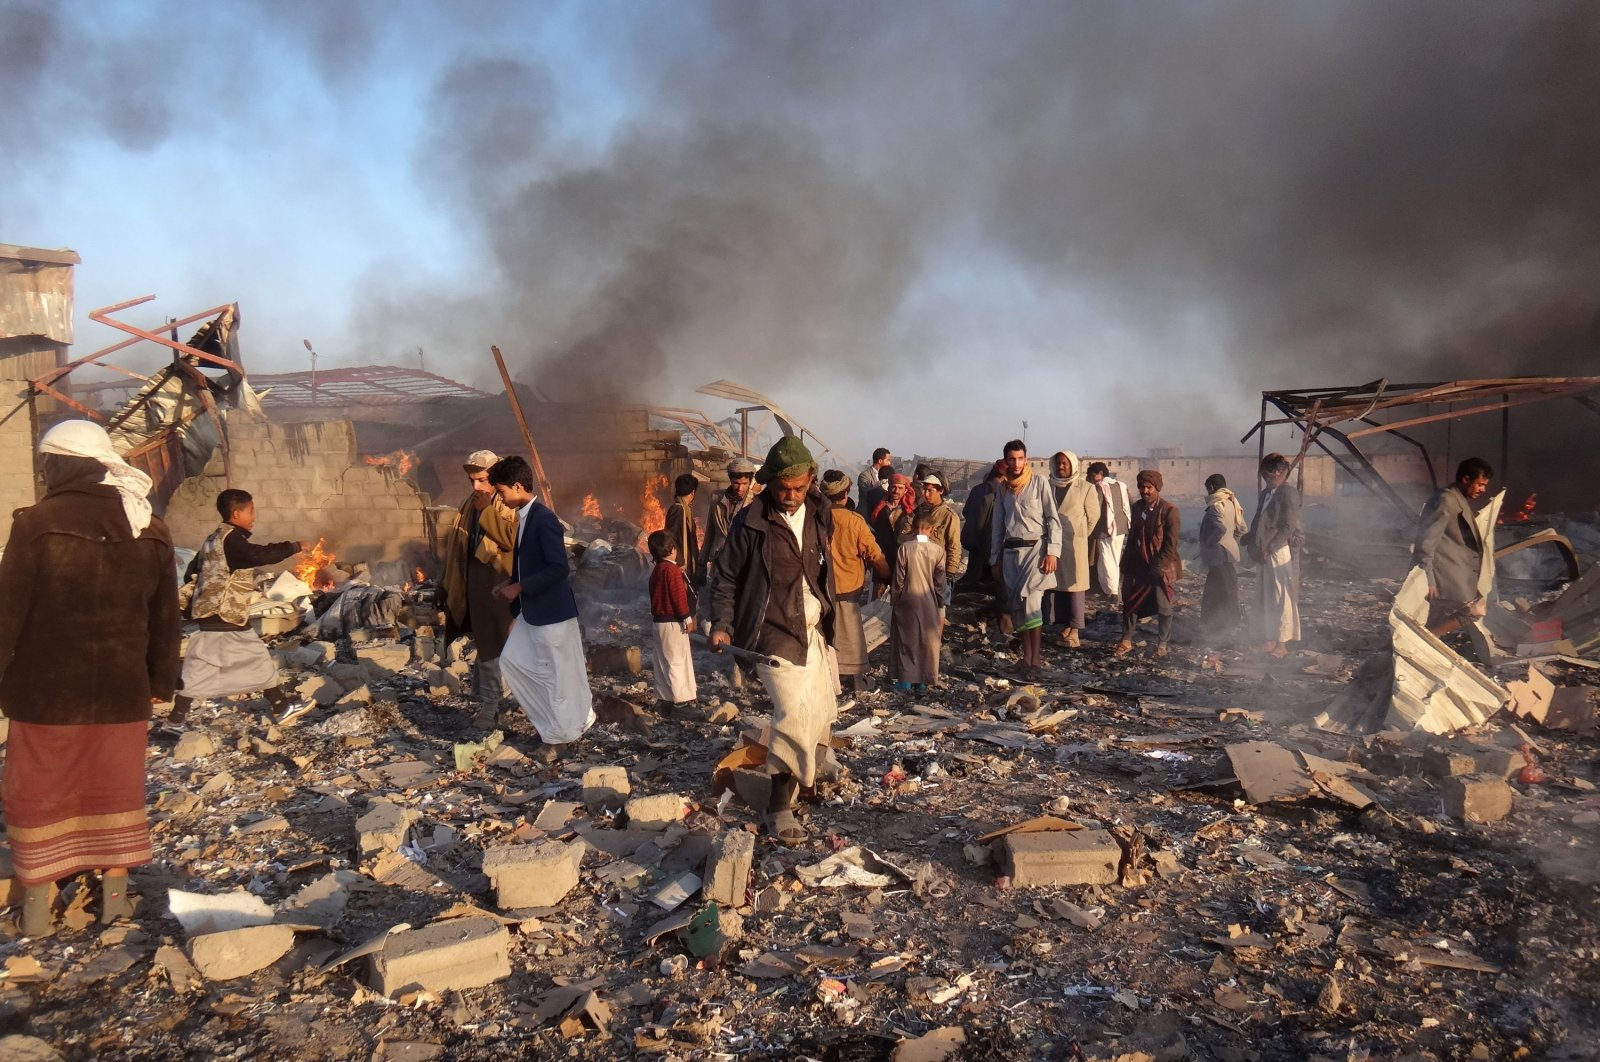 In this file photo taken on Jan. 6, 2018 smoke rises as Yemenis inspect the damage at the site of airstrikes in the northwestern Huthi-held city of Saada. (AFP Photo)